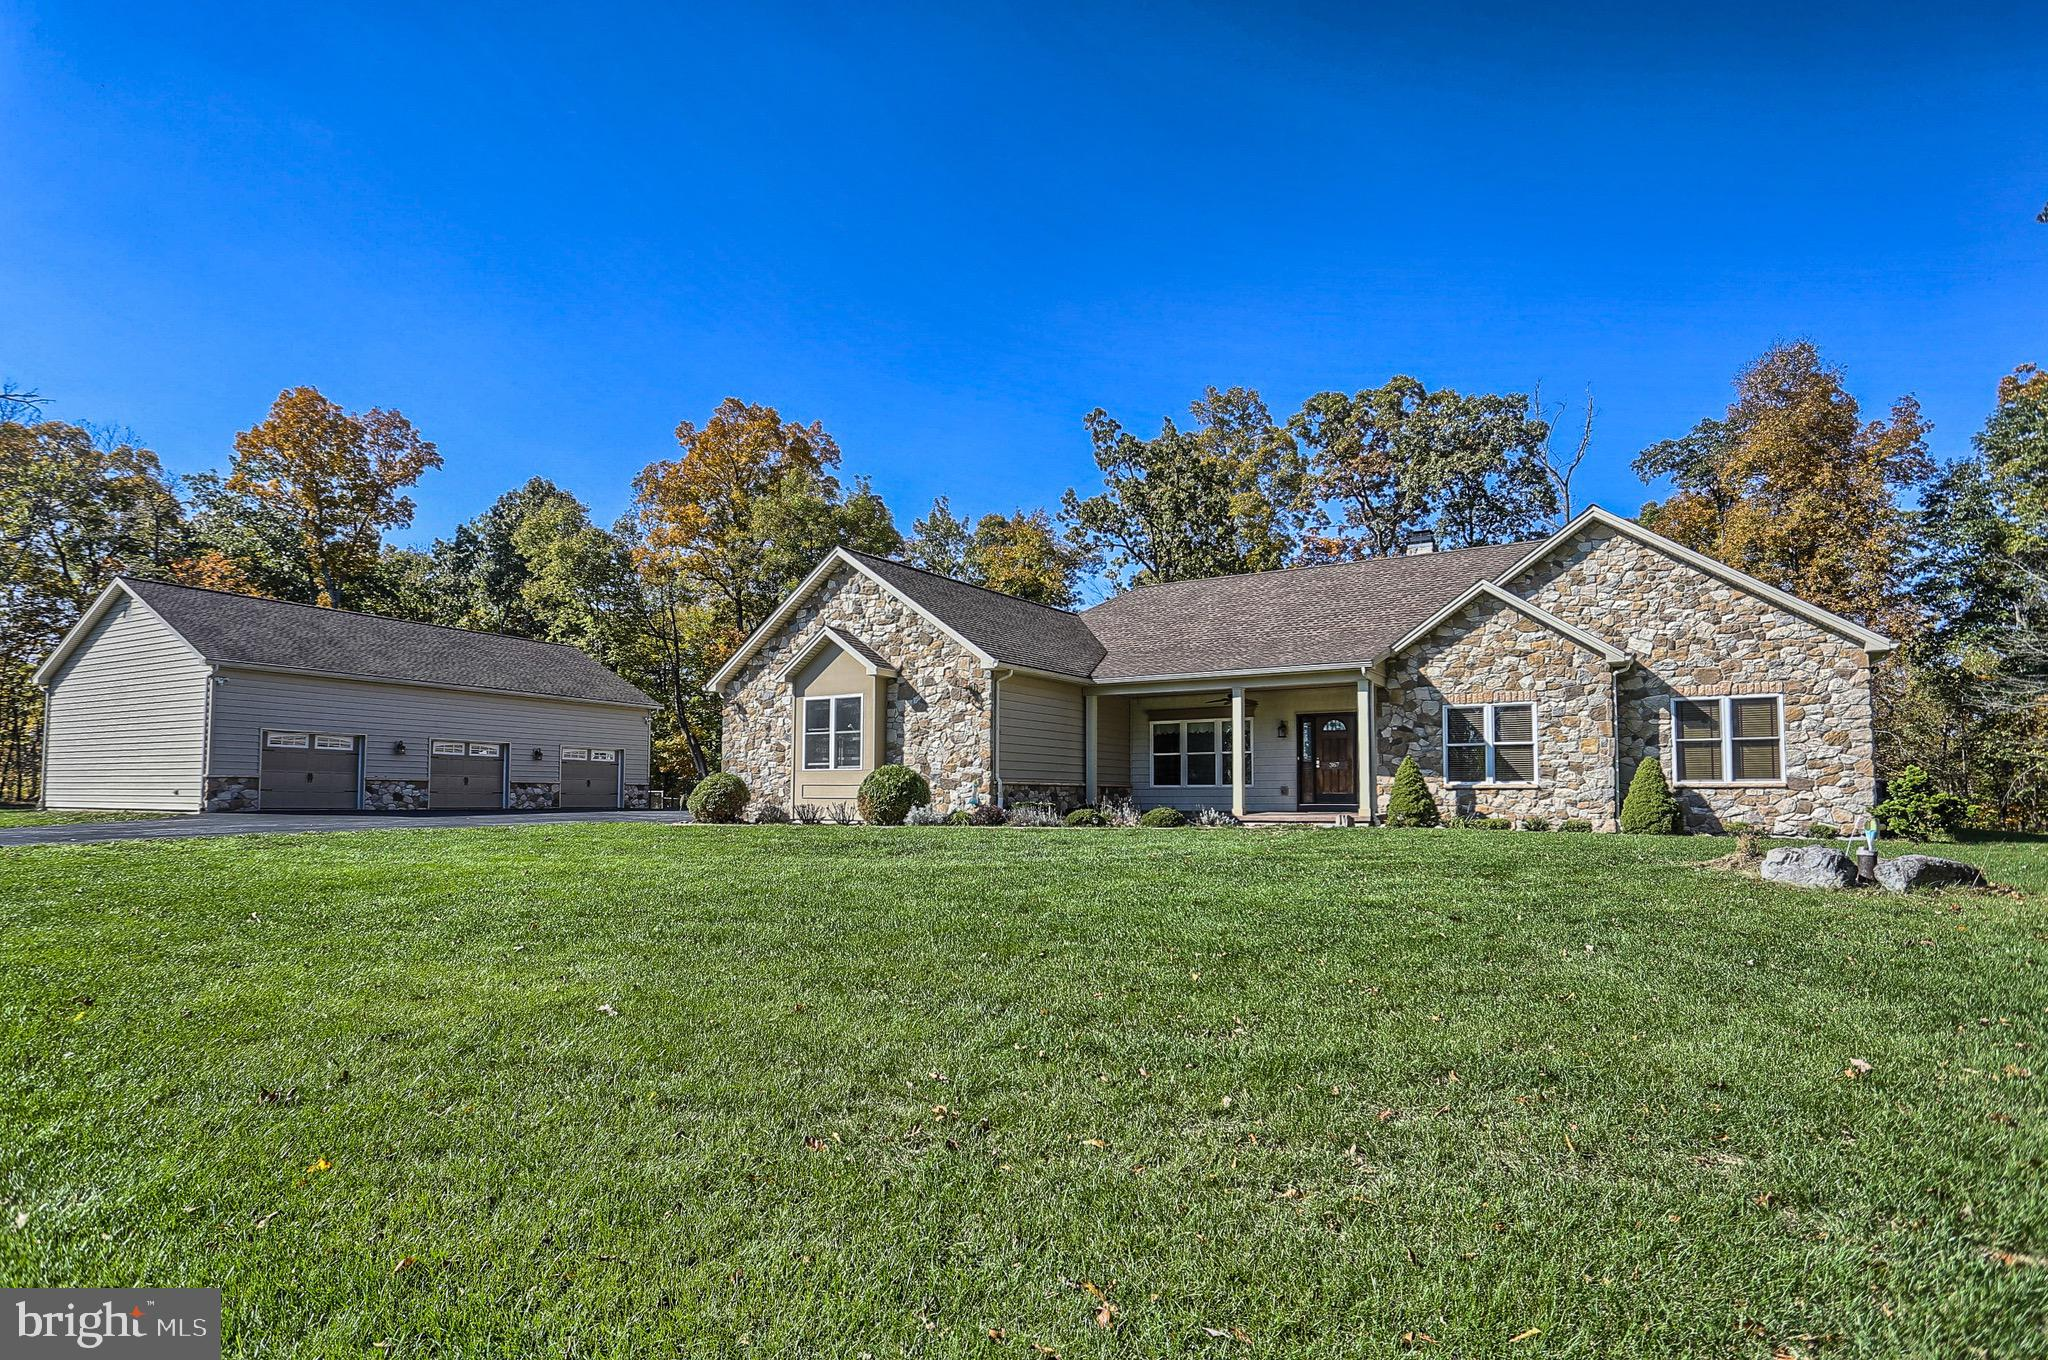 367 BORING BRIDGE ROAD, LEWISBERRY, PA 17339